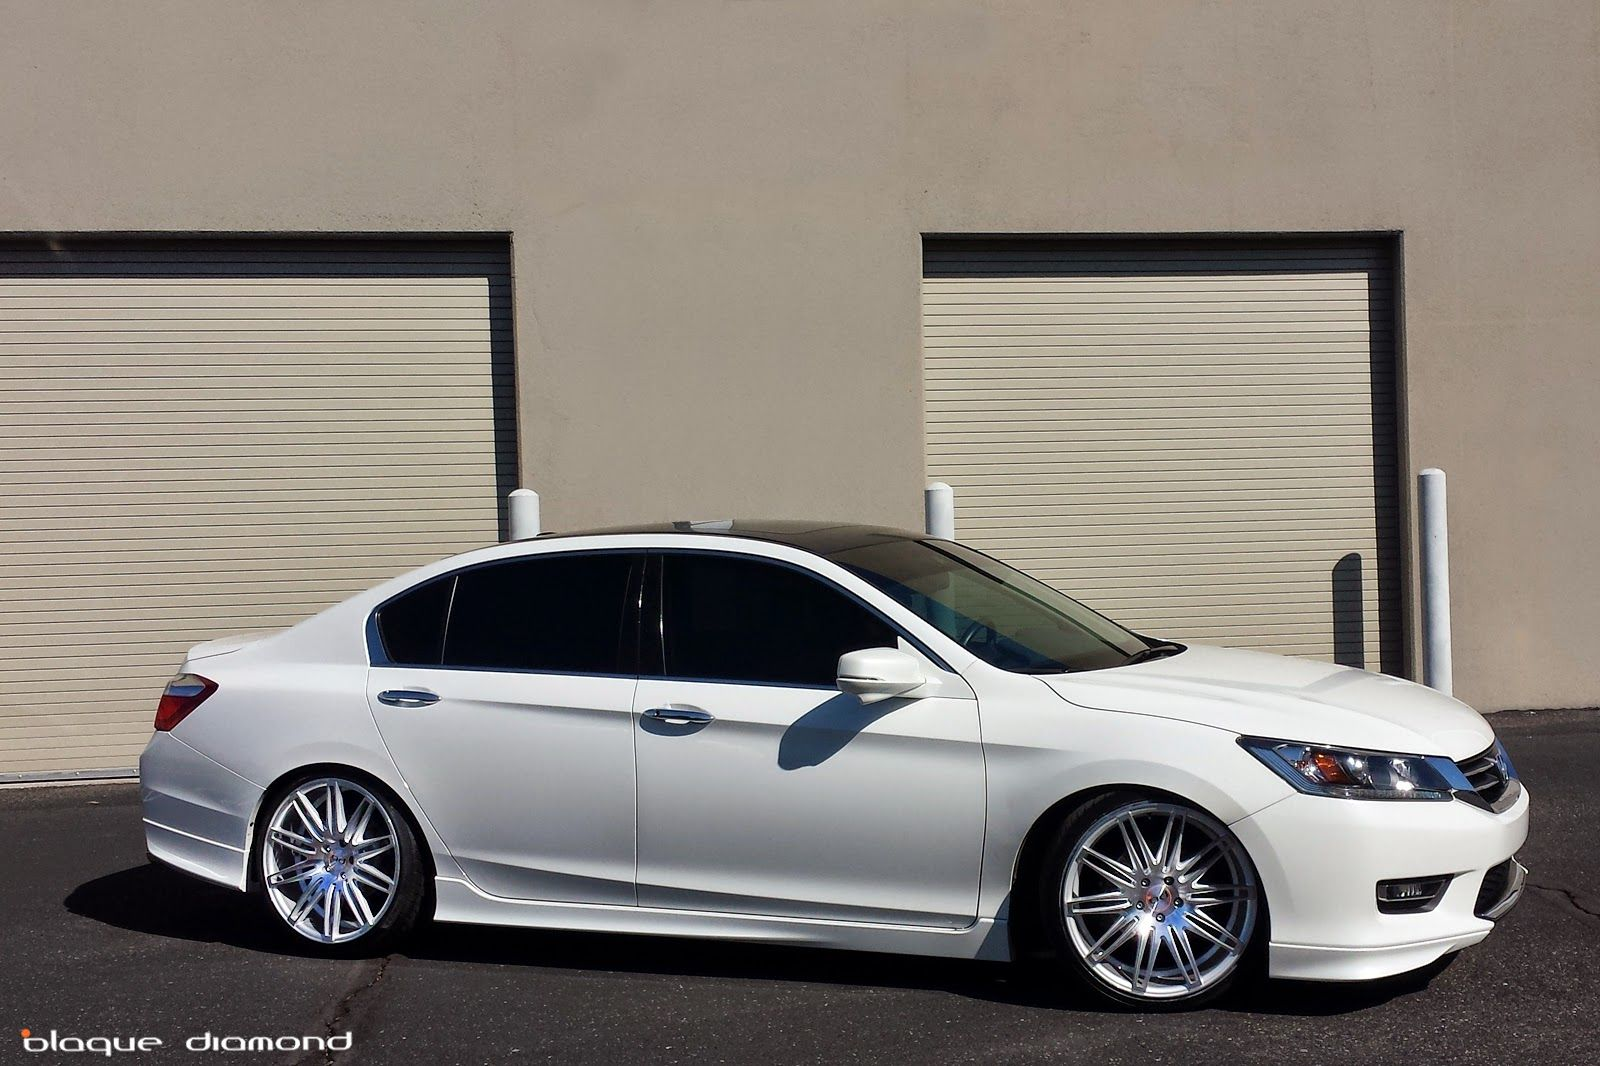 blog castrucci sport mpgs matt hybrid honda accord interior